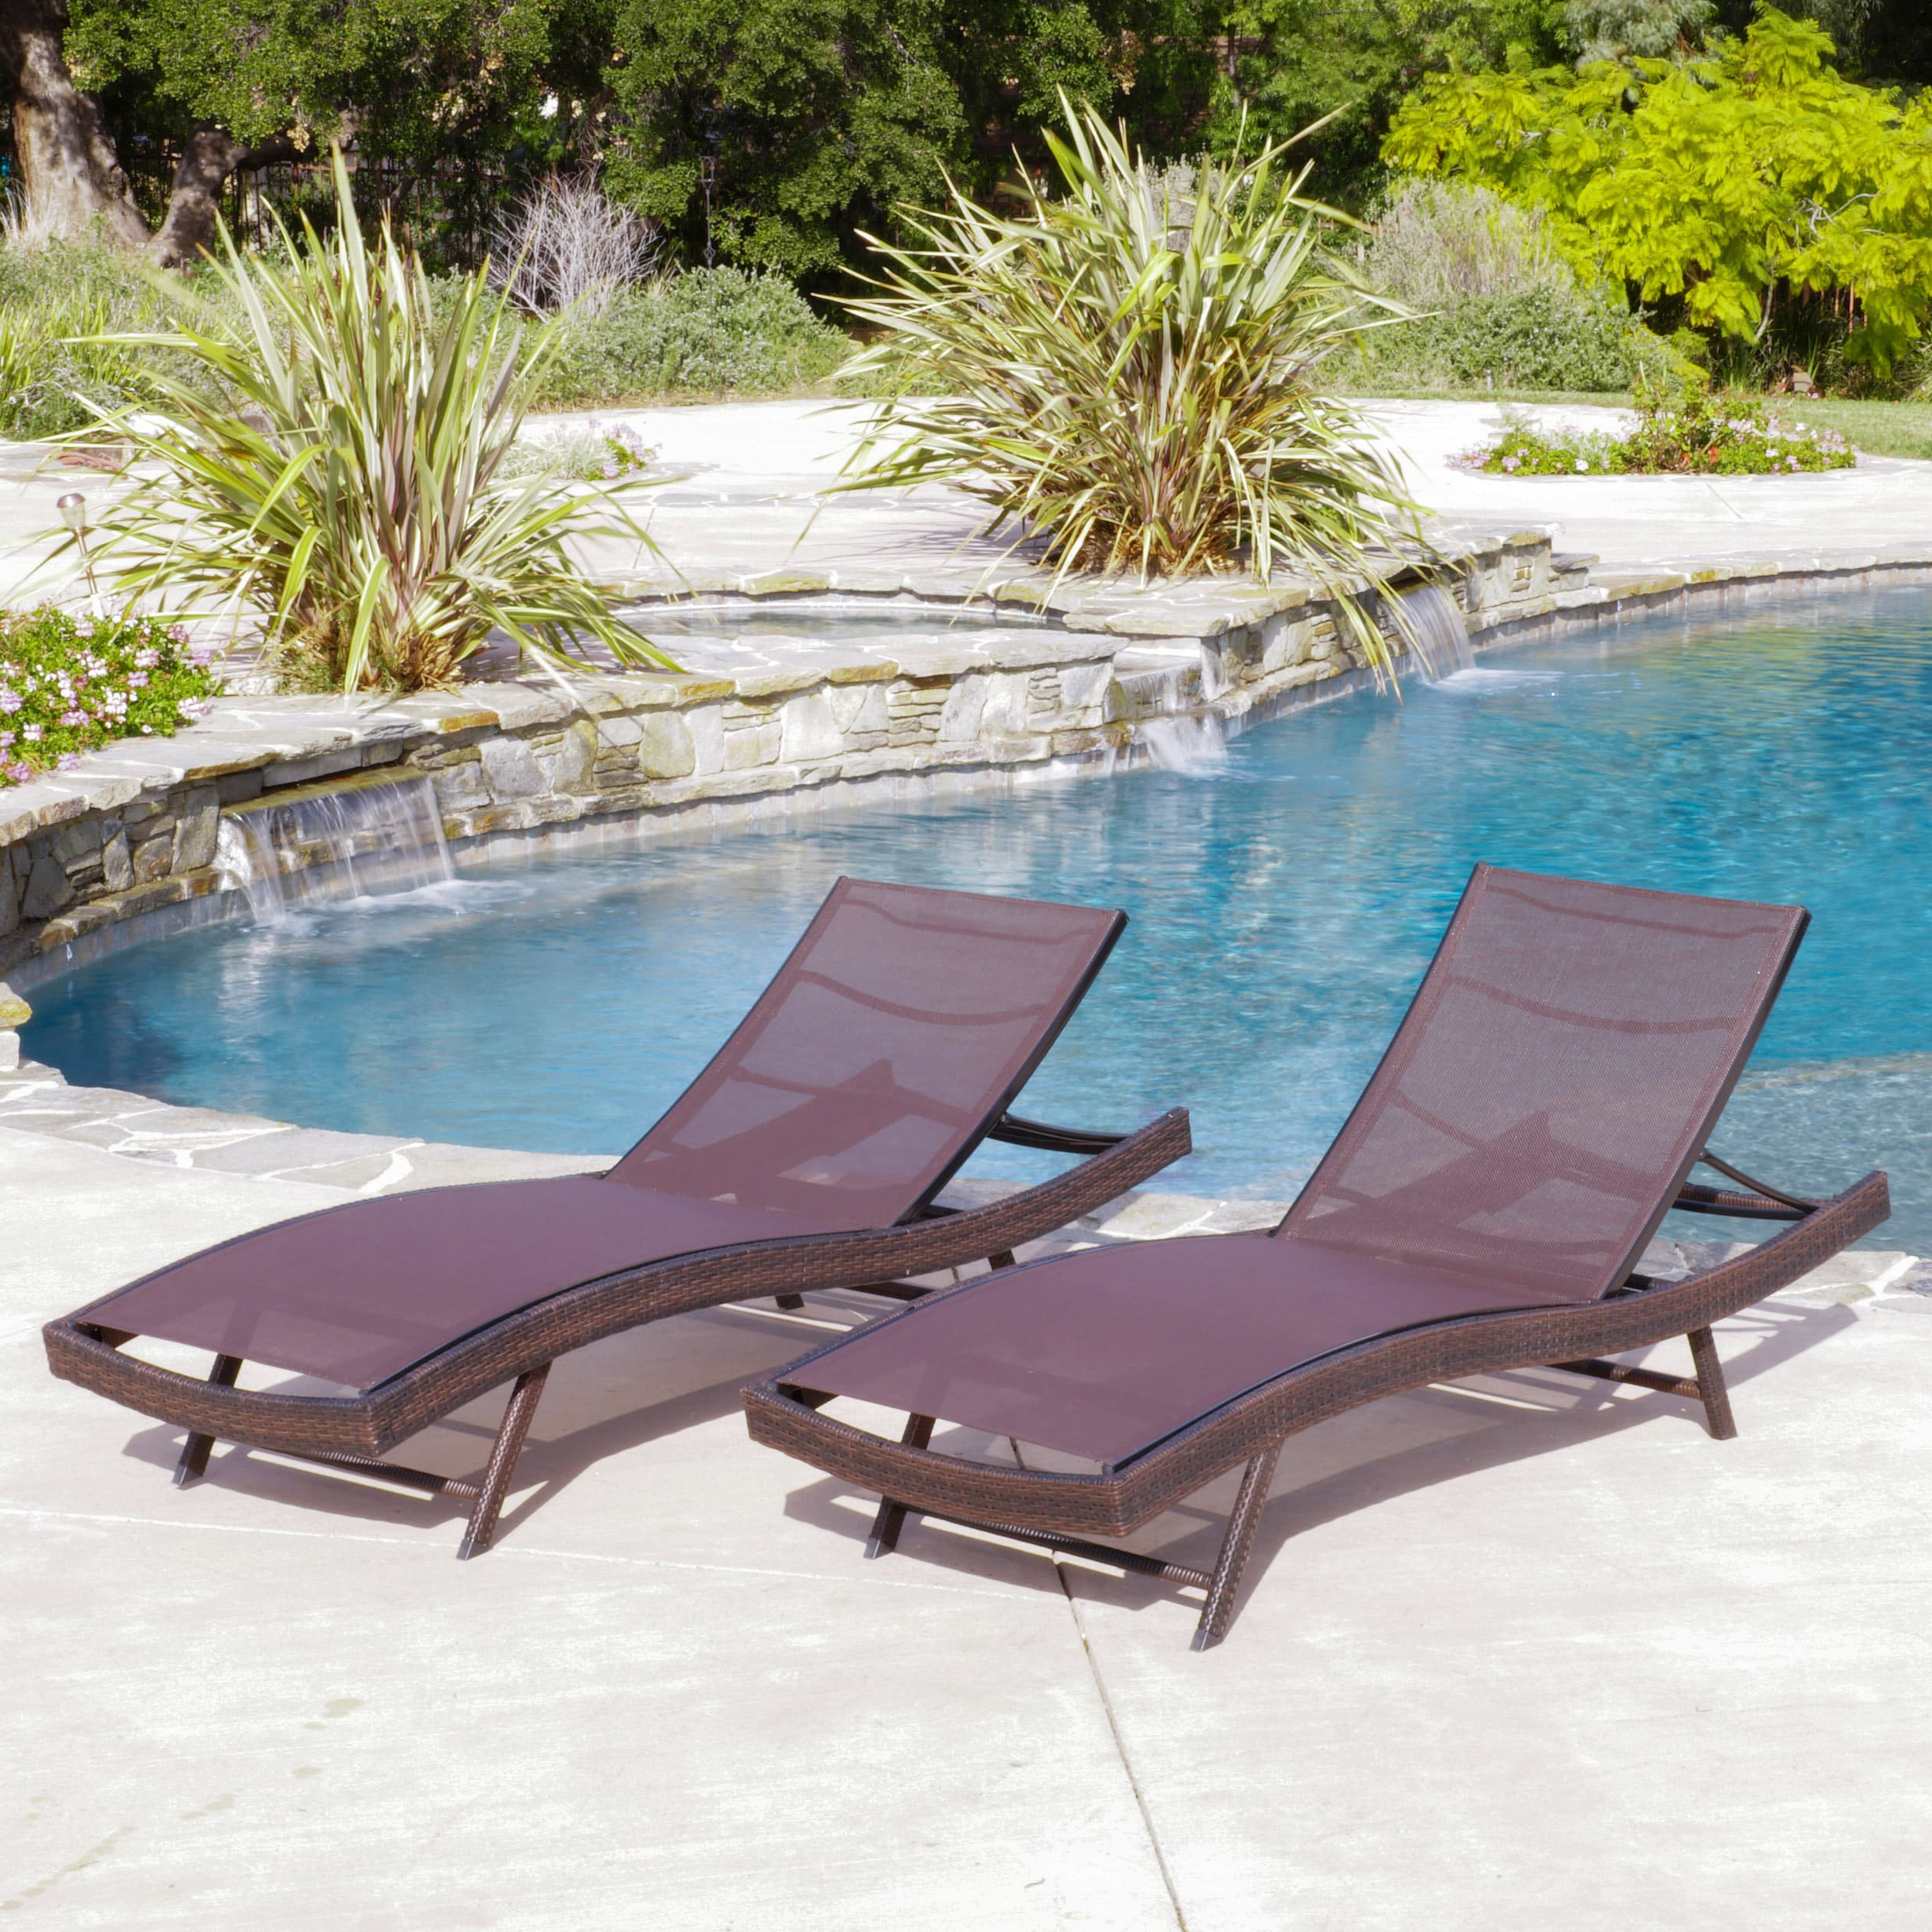 Kauai Outdoor Wicker Chaise Lounges With Regard To Best And Newest Christopher Knight Home Kauai Outdoor Chaise Lounge (Set Of 2) (View 14 of 25)